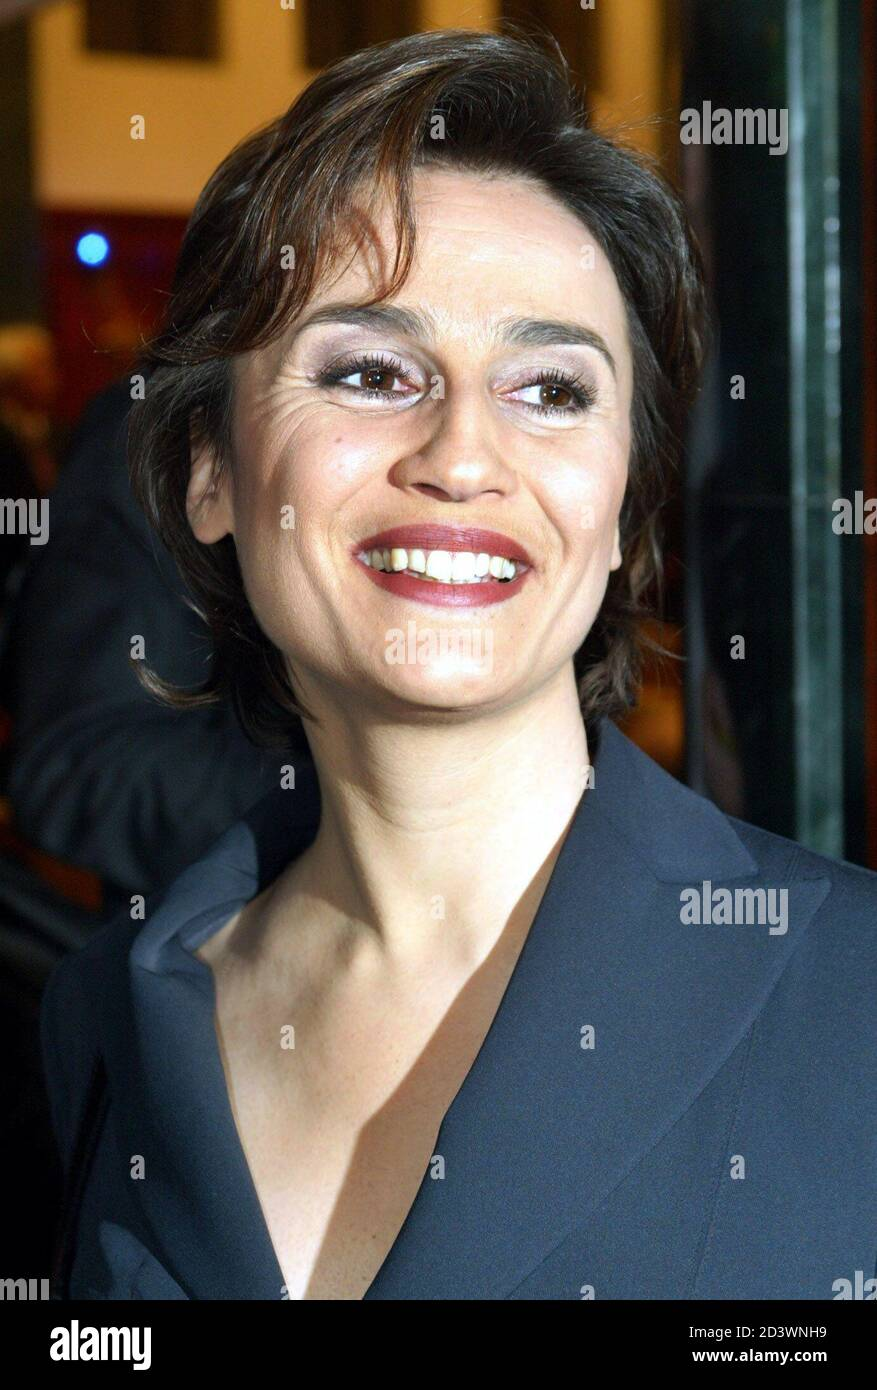 Sandra Maischberger, German television presenter of NTV broadcasting station smiles during a reception in the German capital Berlin January 20, 2003.  [Maischberger attended a celebration for the 65th birthday of Paul Spiegel, president of the German Jew Council.] Stock Photo